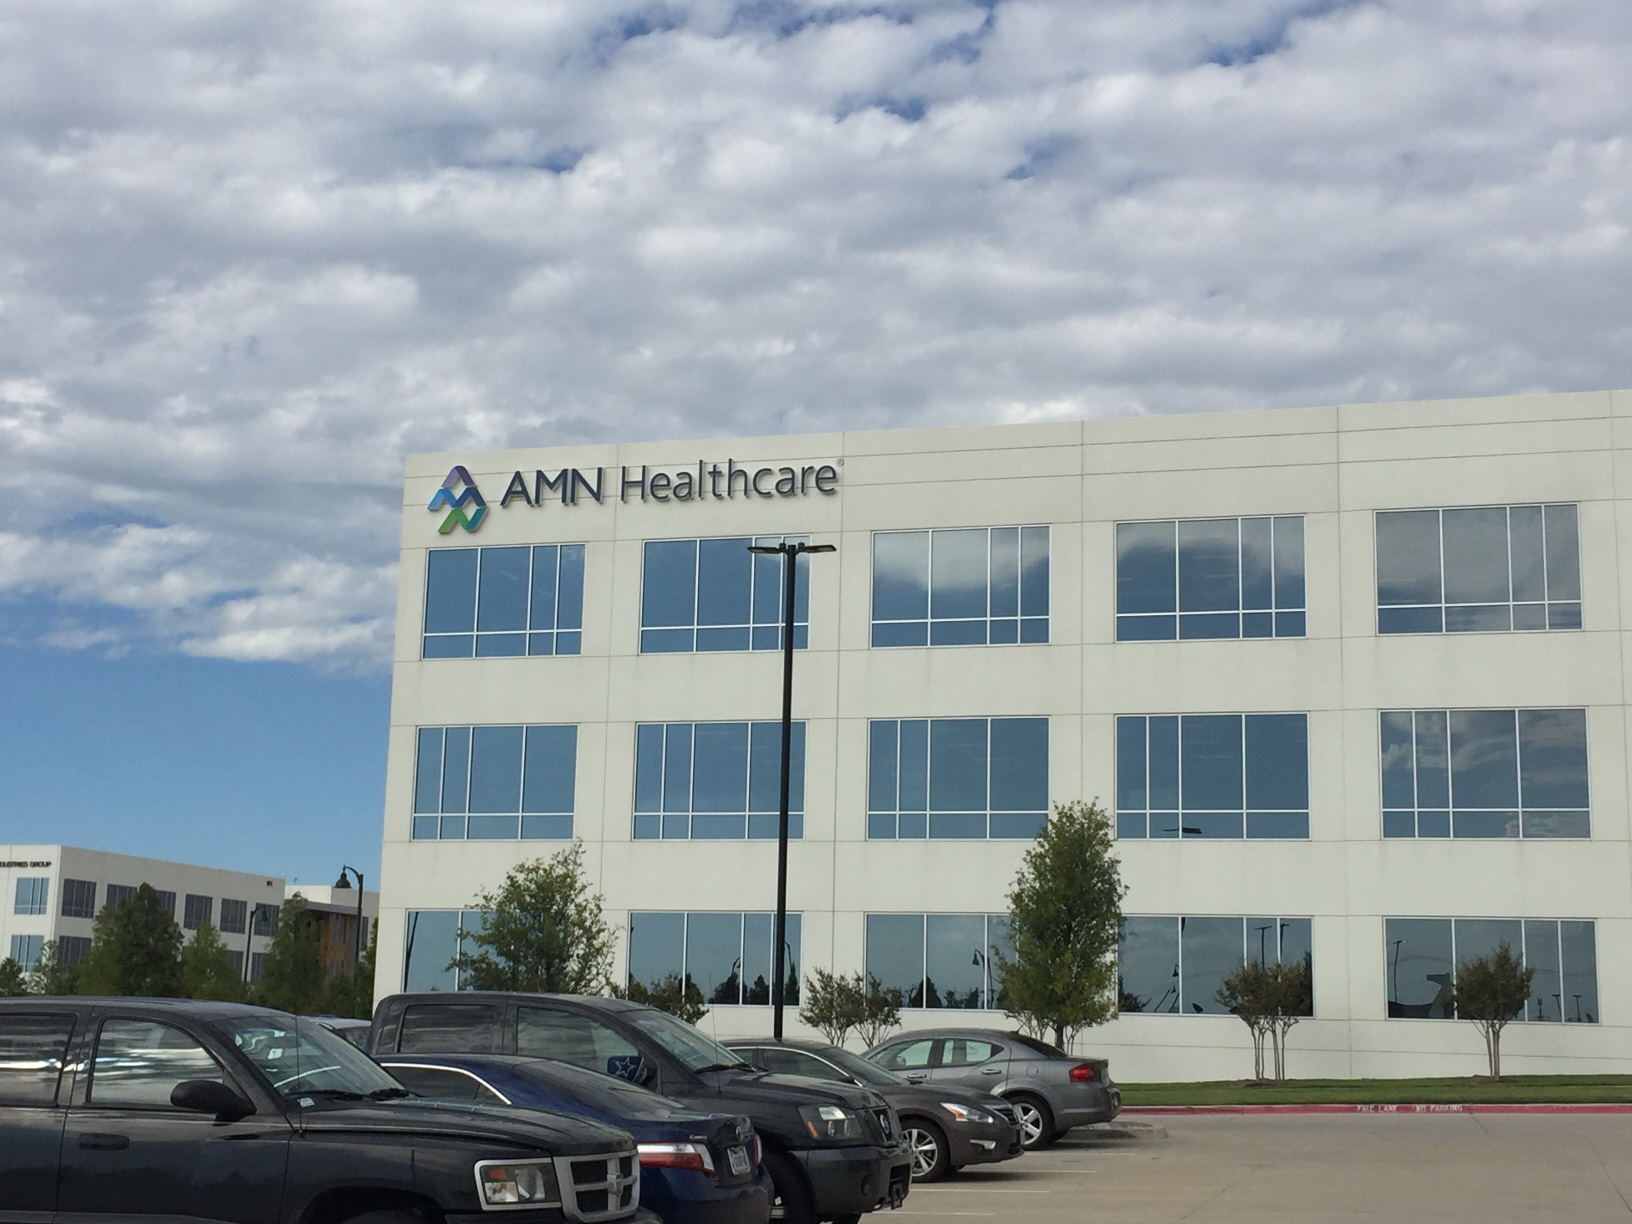 AMN Healthcare office in Coppell, Texas.